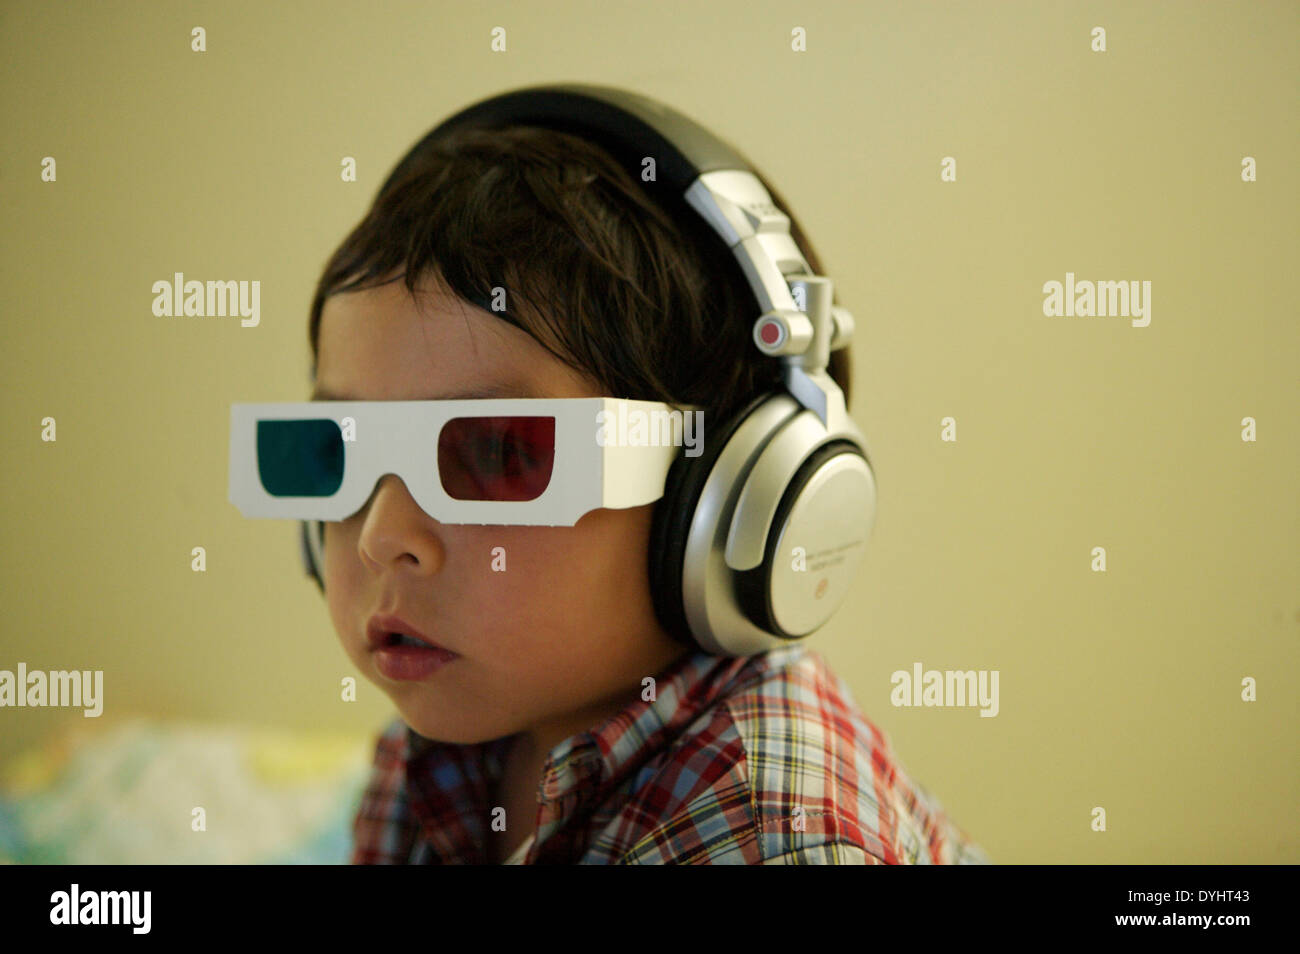 Small Boy Wearing 3-D Glasses and Headphones - Stock Image